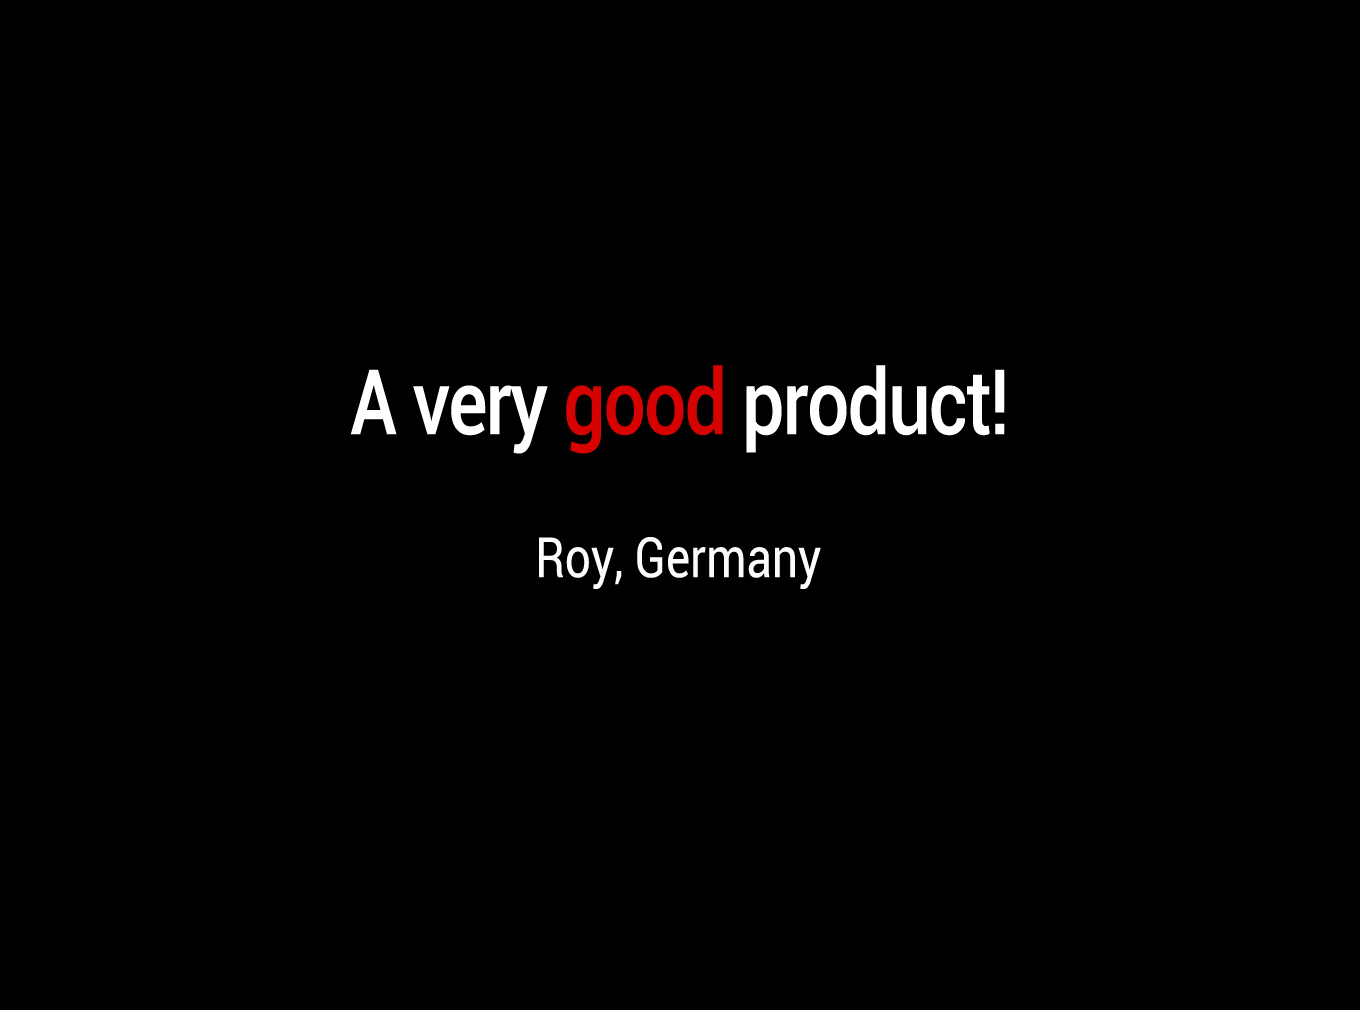 A very good product